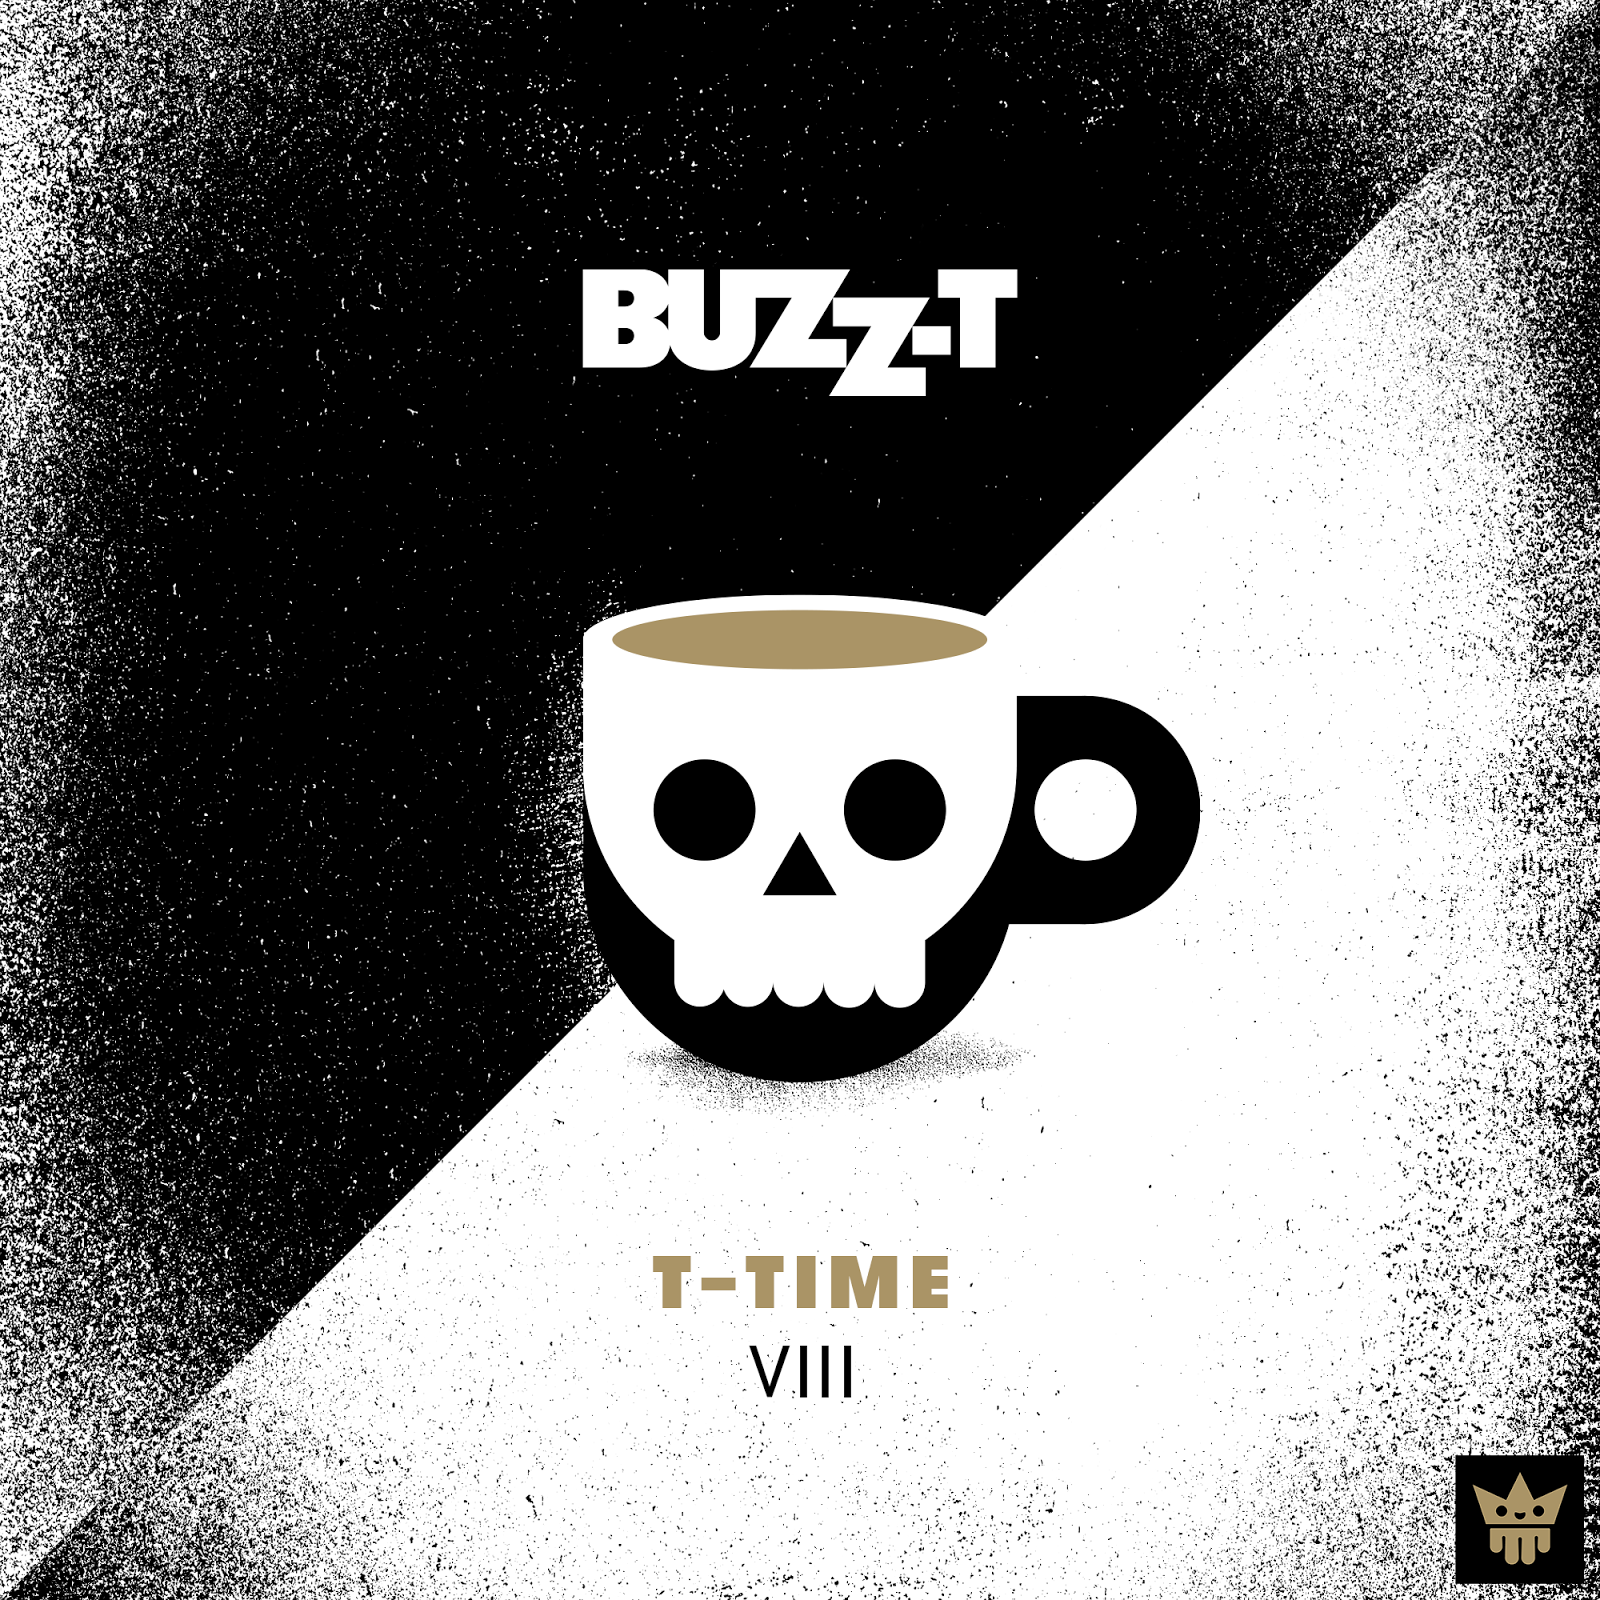 Buzz-T – T-Time 8 | Das Blogbuzzter HipHop Mixtape